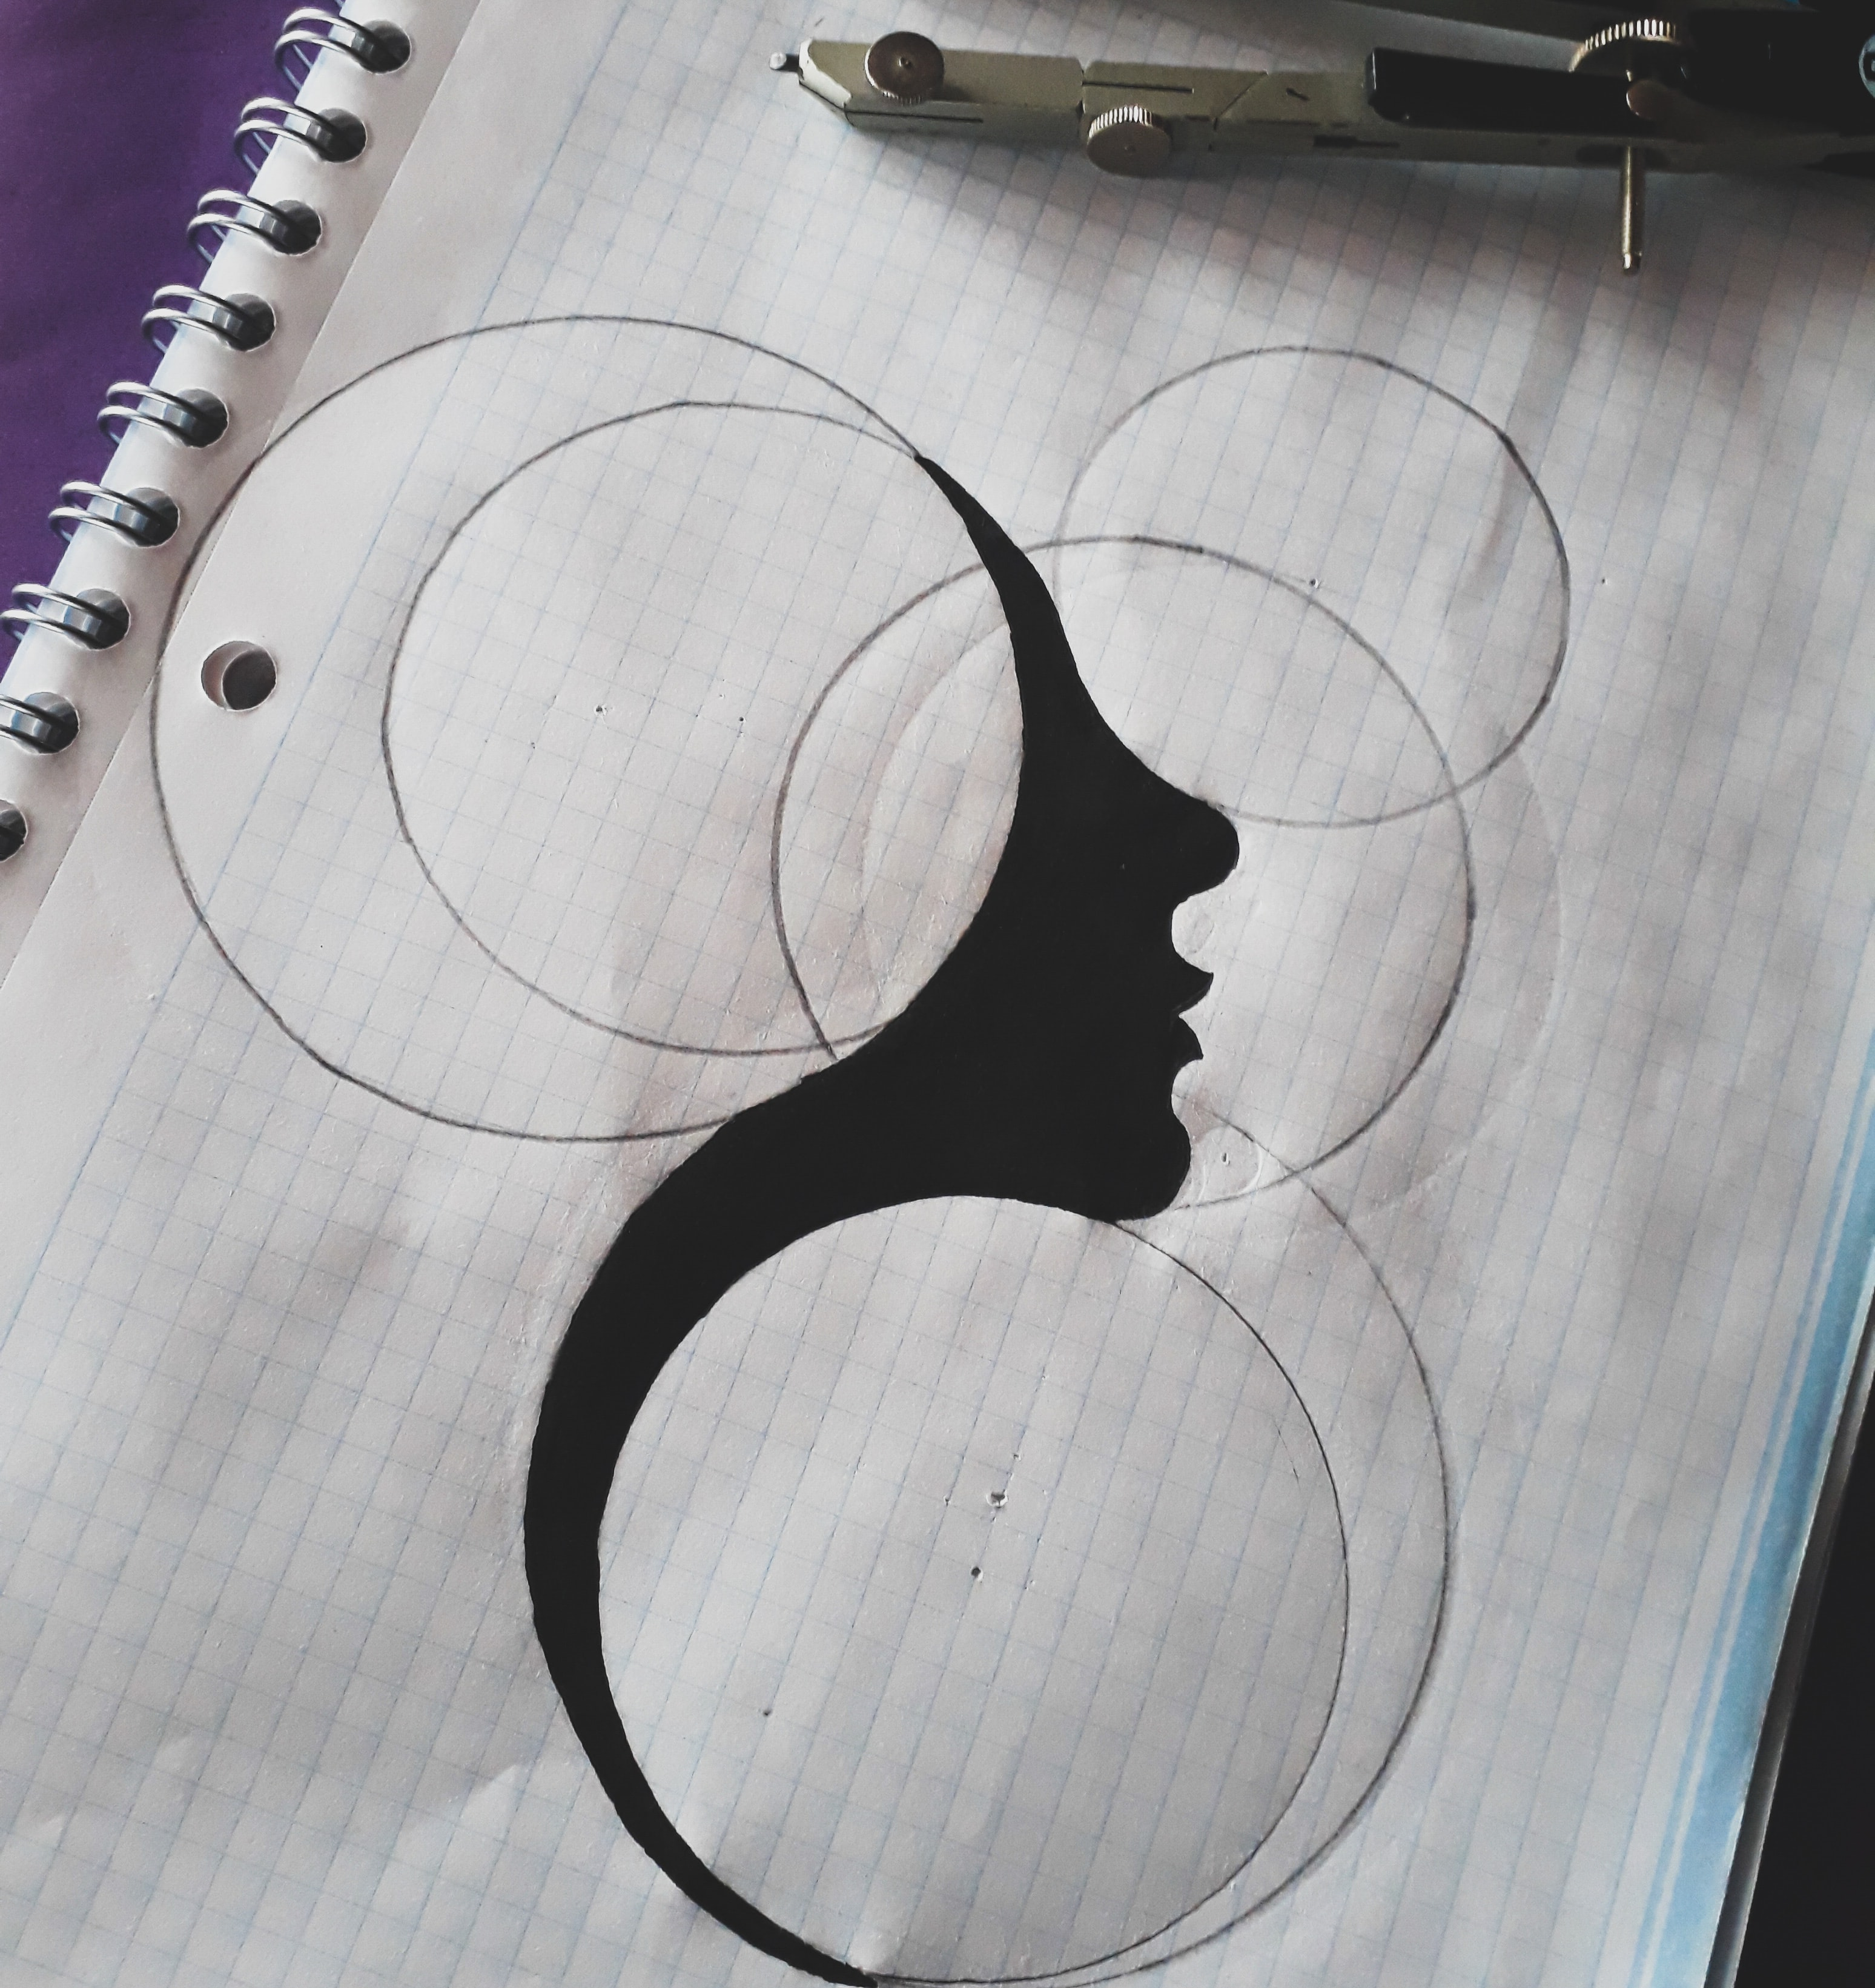 /An abstract face drawing made with a black pen.